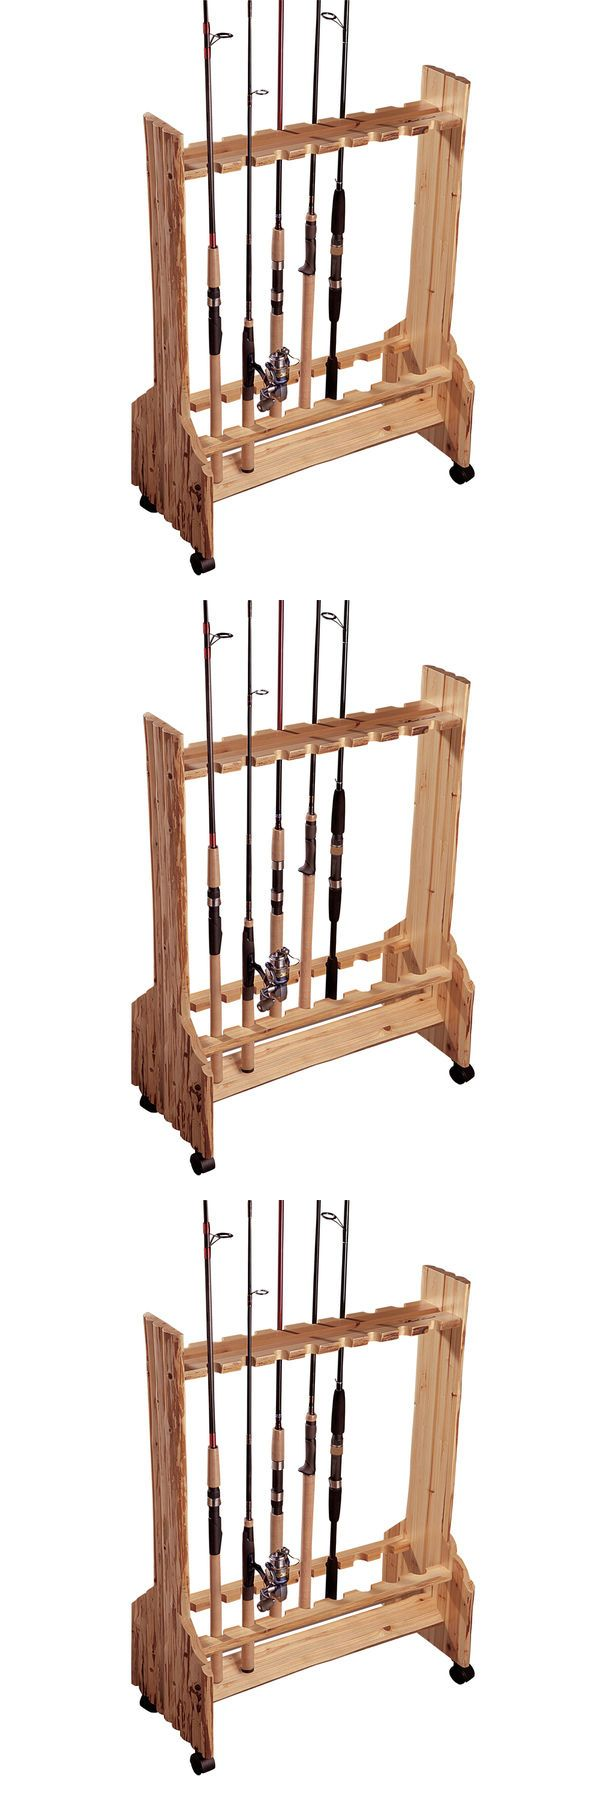 25 beste idee n over fishing rod stand op pinterest for Homemade fishing rod holders for bank fishing